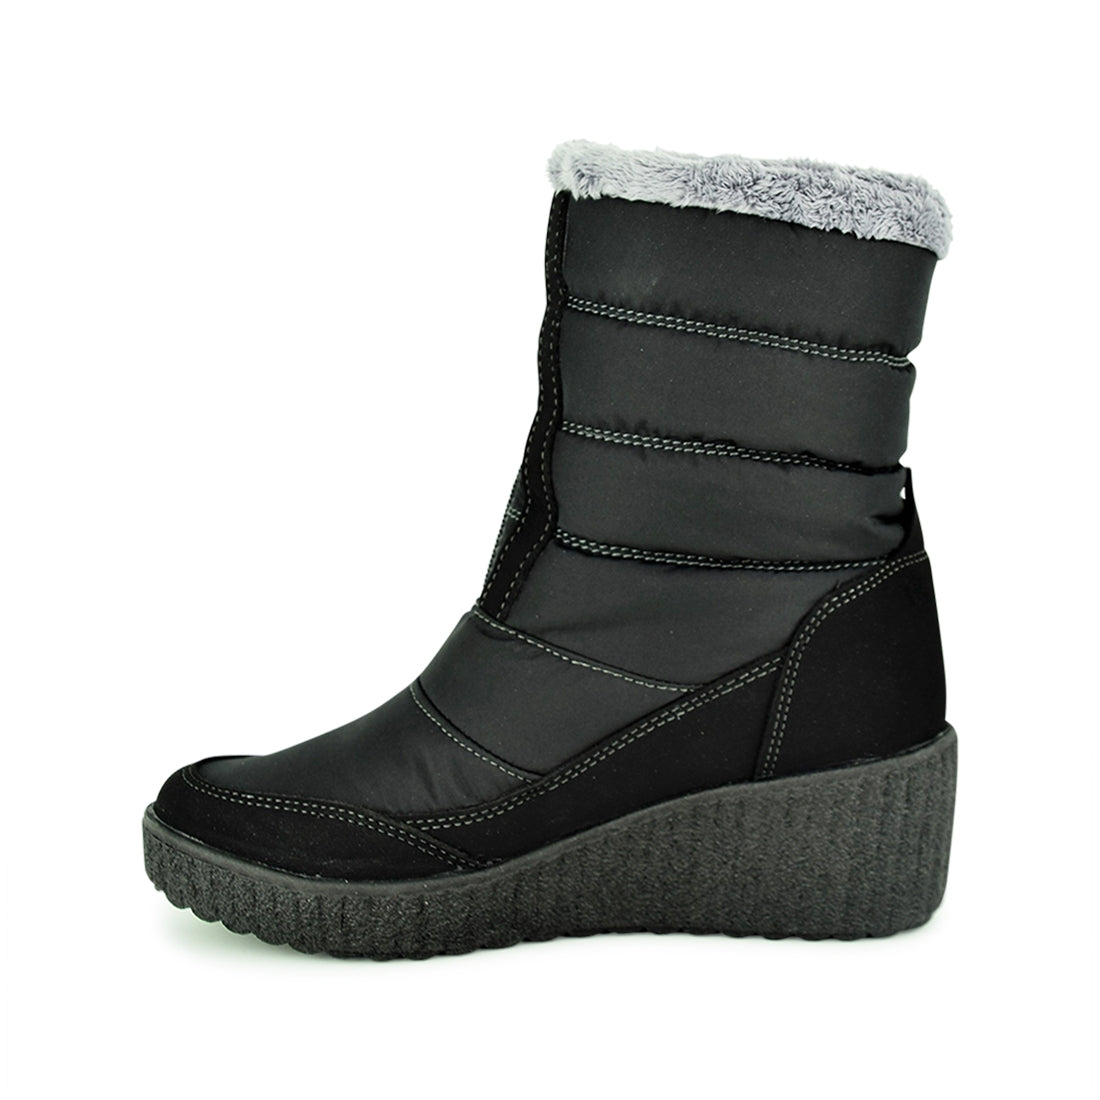 TYRA - Norski Wedge Weather Proof Mid Boots Black